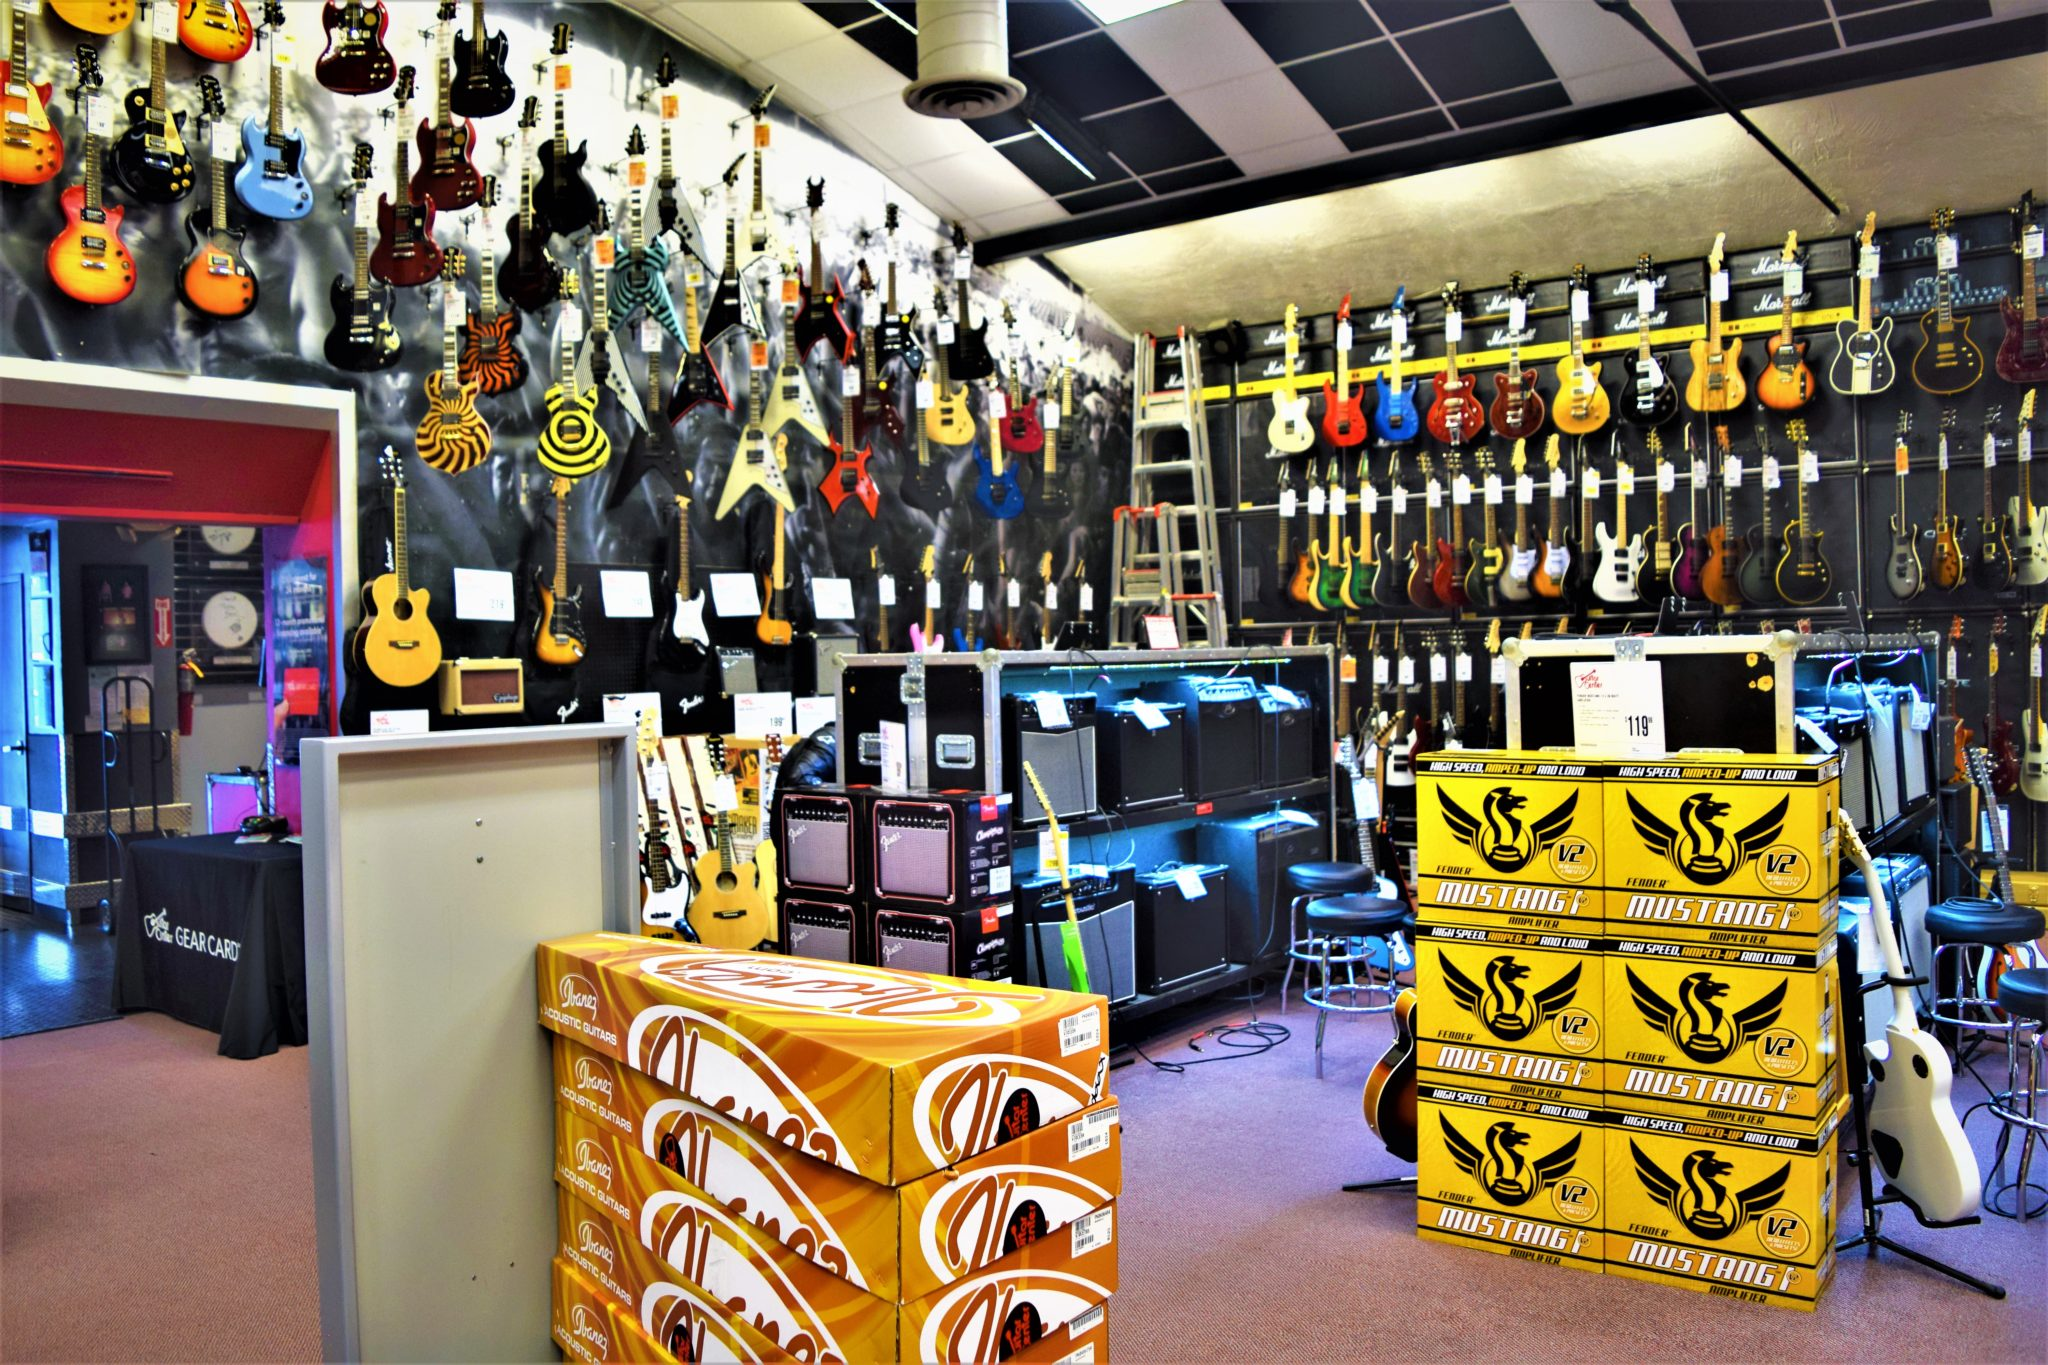 Inside the Guitar center hollywood, free things to do in los angeles